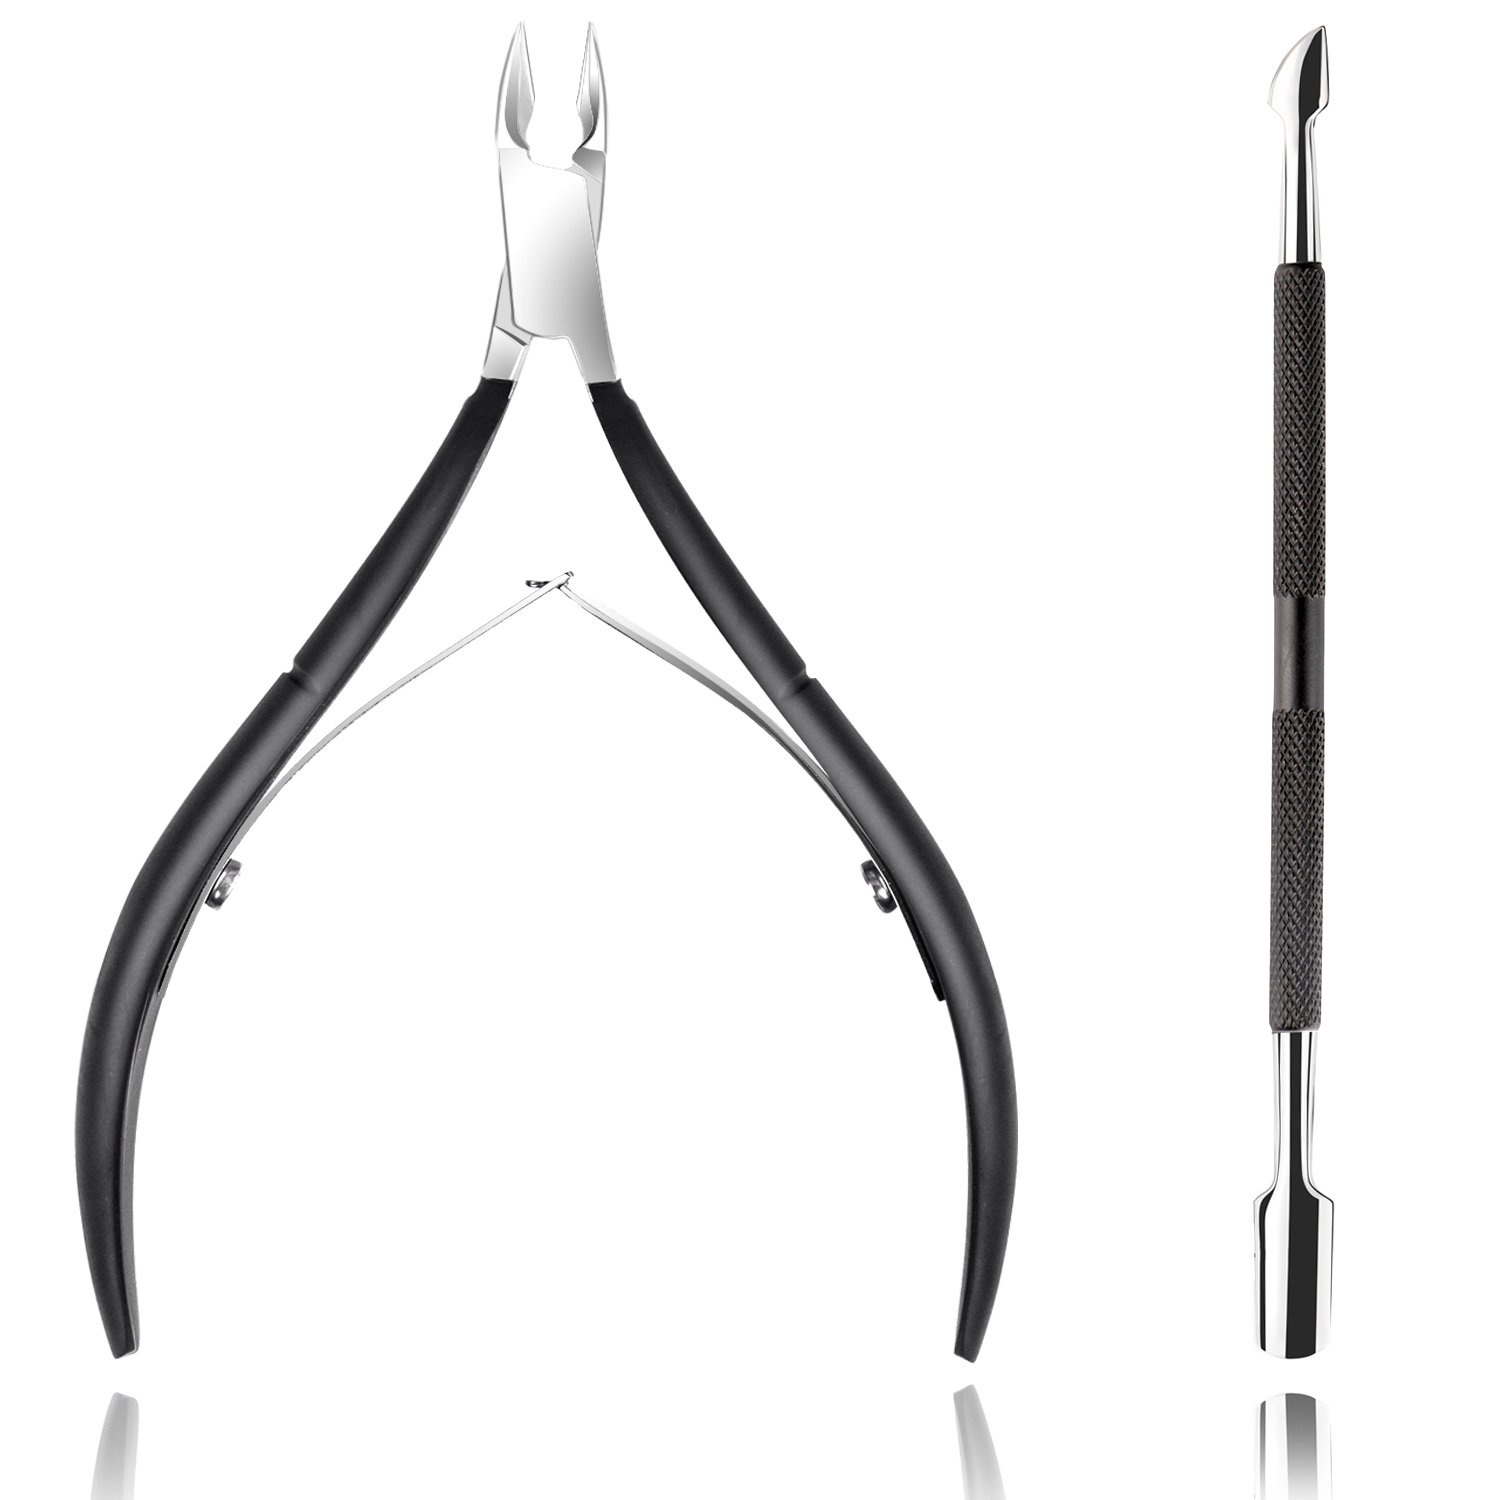 Ejiubas Cuticle Trimmer with Cuticle Pusher Cuticle Nipper Professional Grade Stainless Steel Cuticle Remover Cutter Clipper Durable Pedicure Manicure Tools for Fingernails and Toenails